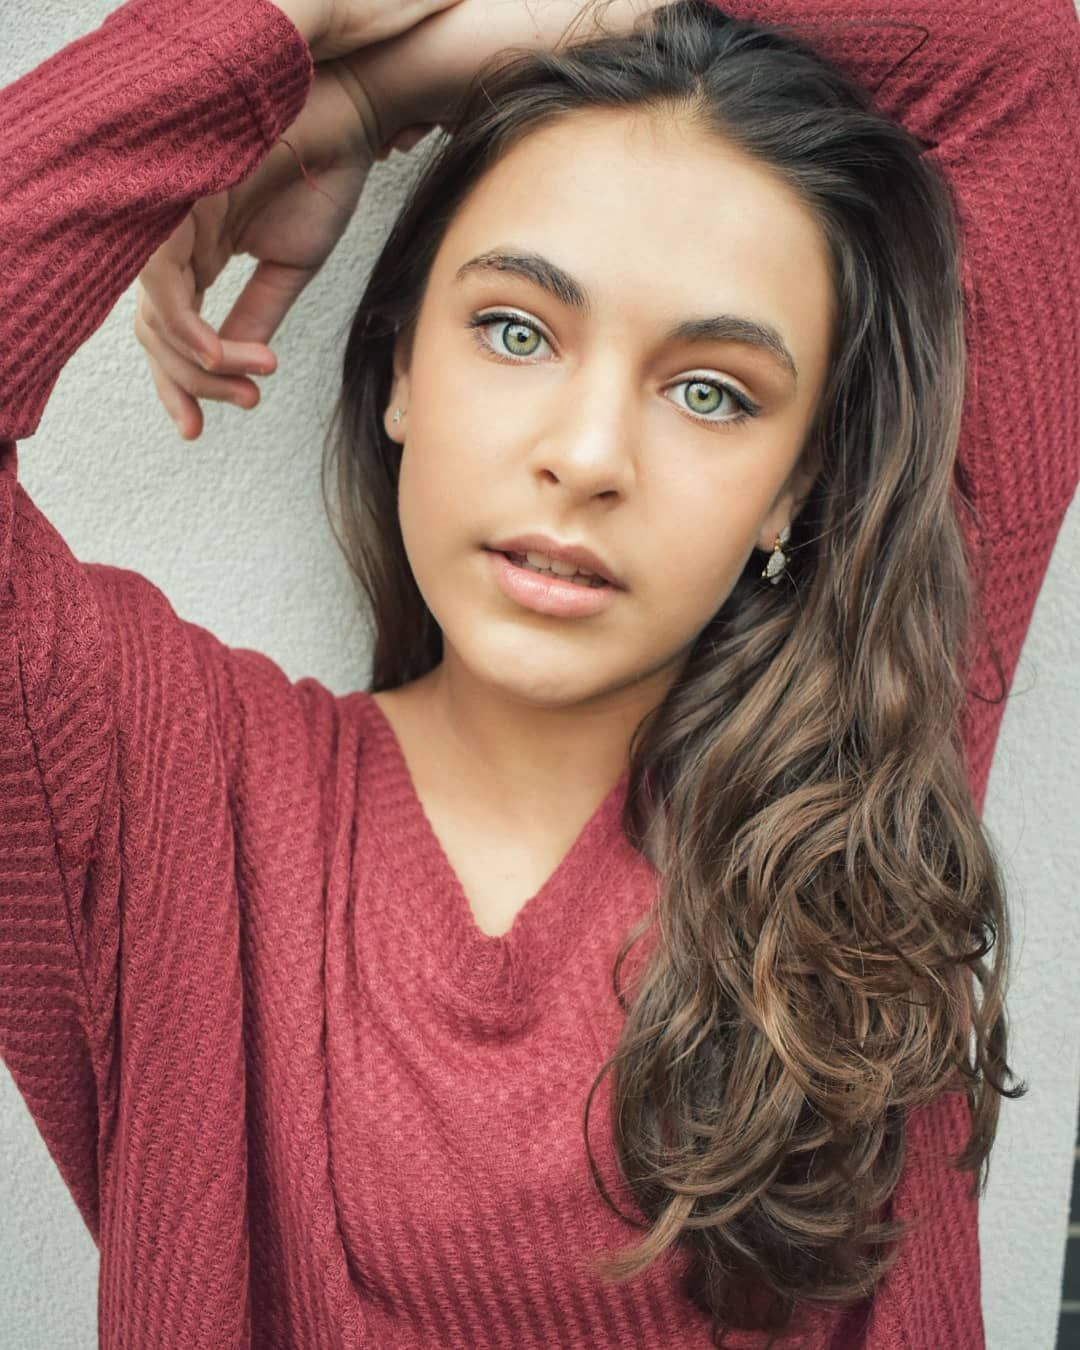 how to become an instagram model influencer